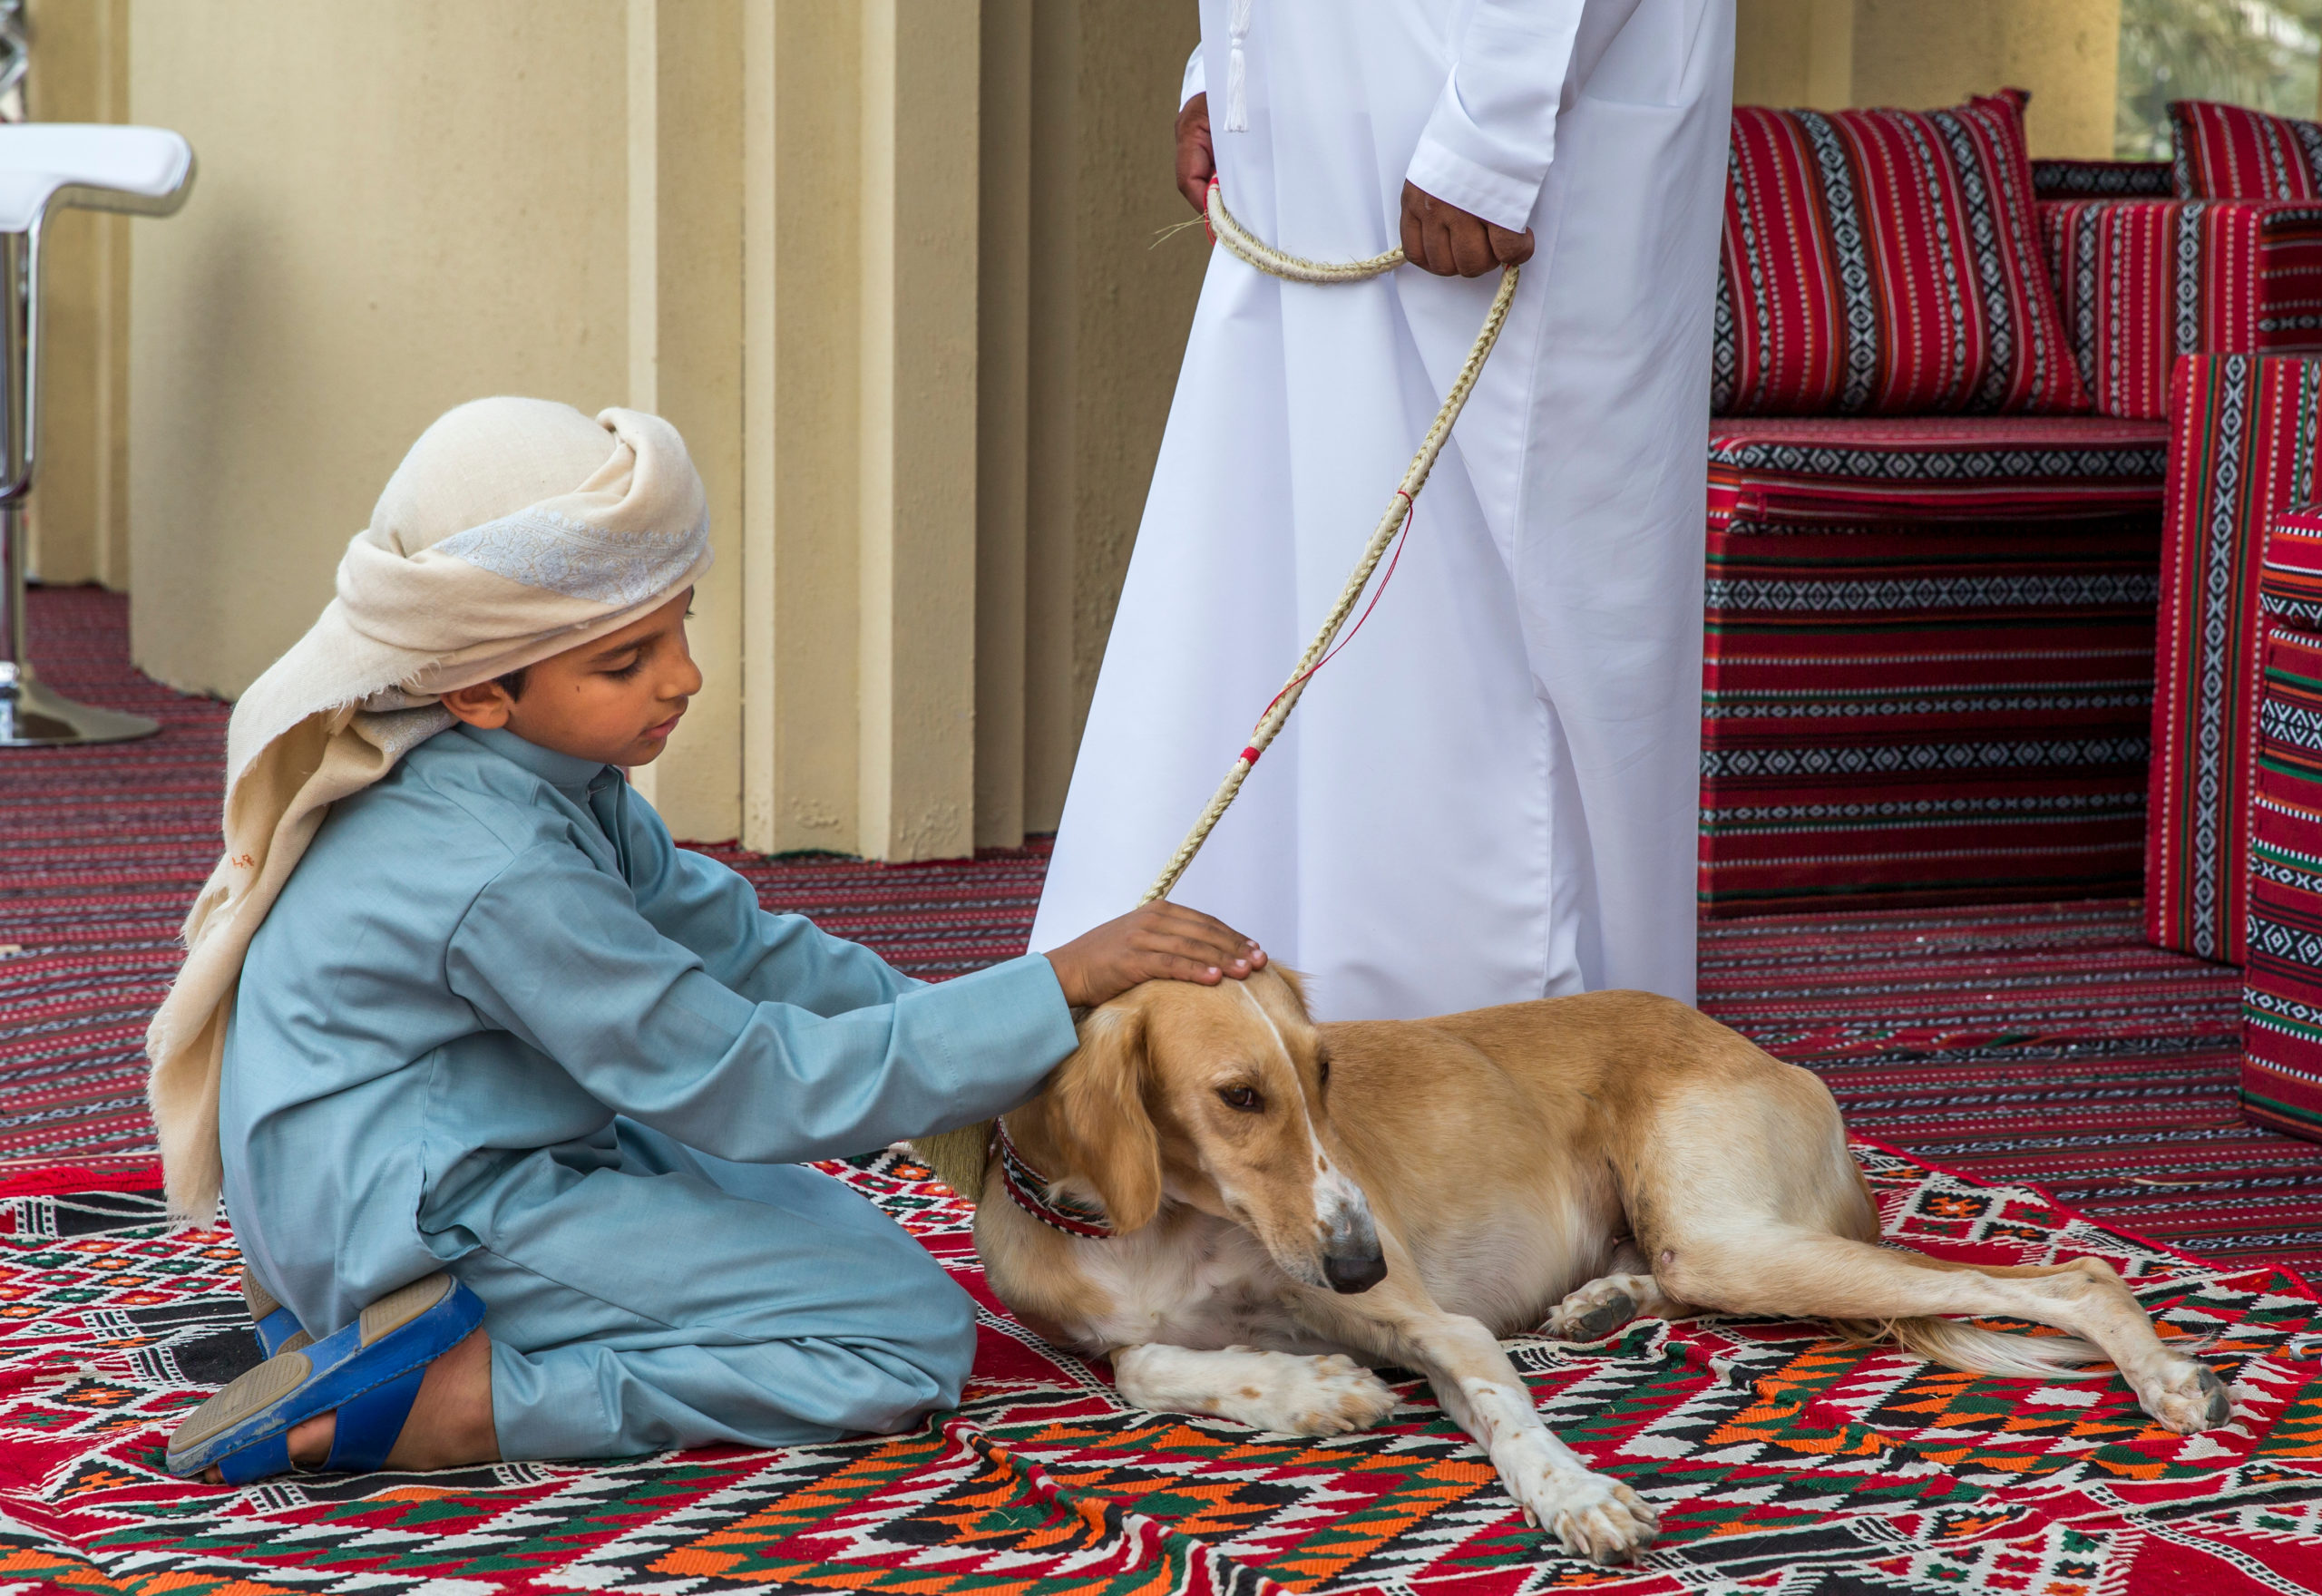 Fast and clever, the Saluki, an Arab dog breed, has been a hunting and guard dog for desert people in the Arabian Peninsula for 5,000 years.